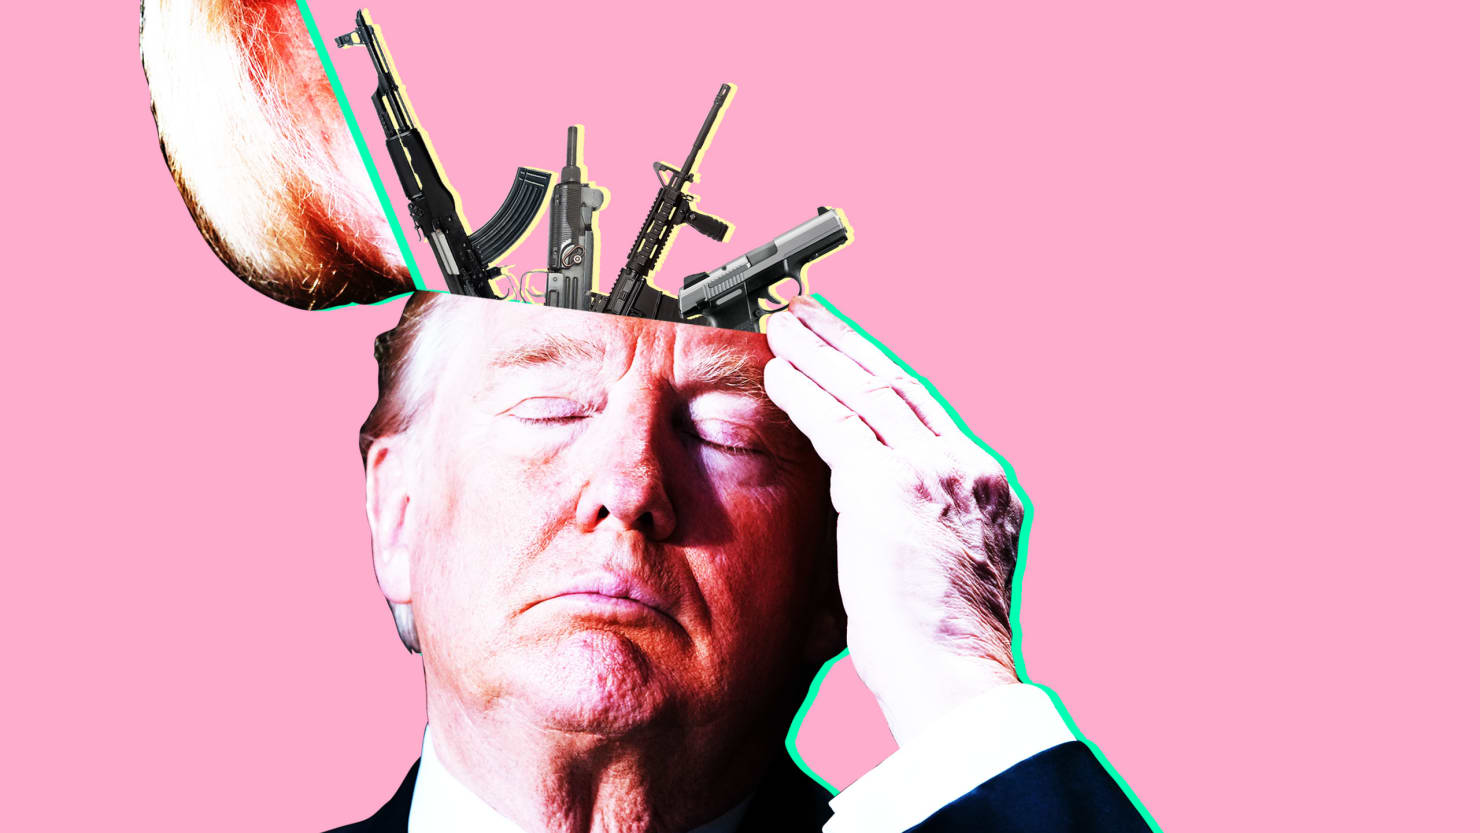 Trump only hears NRA